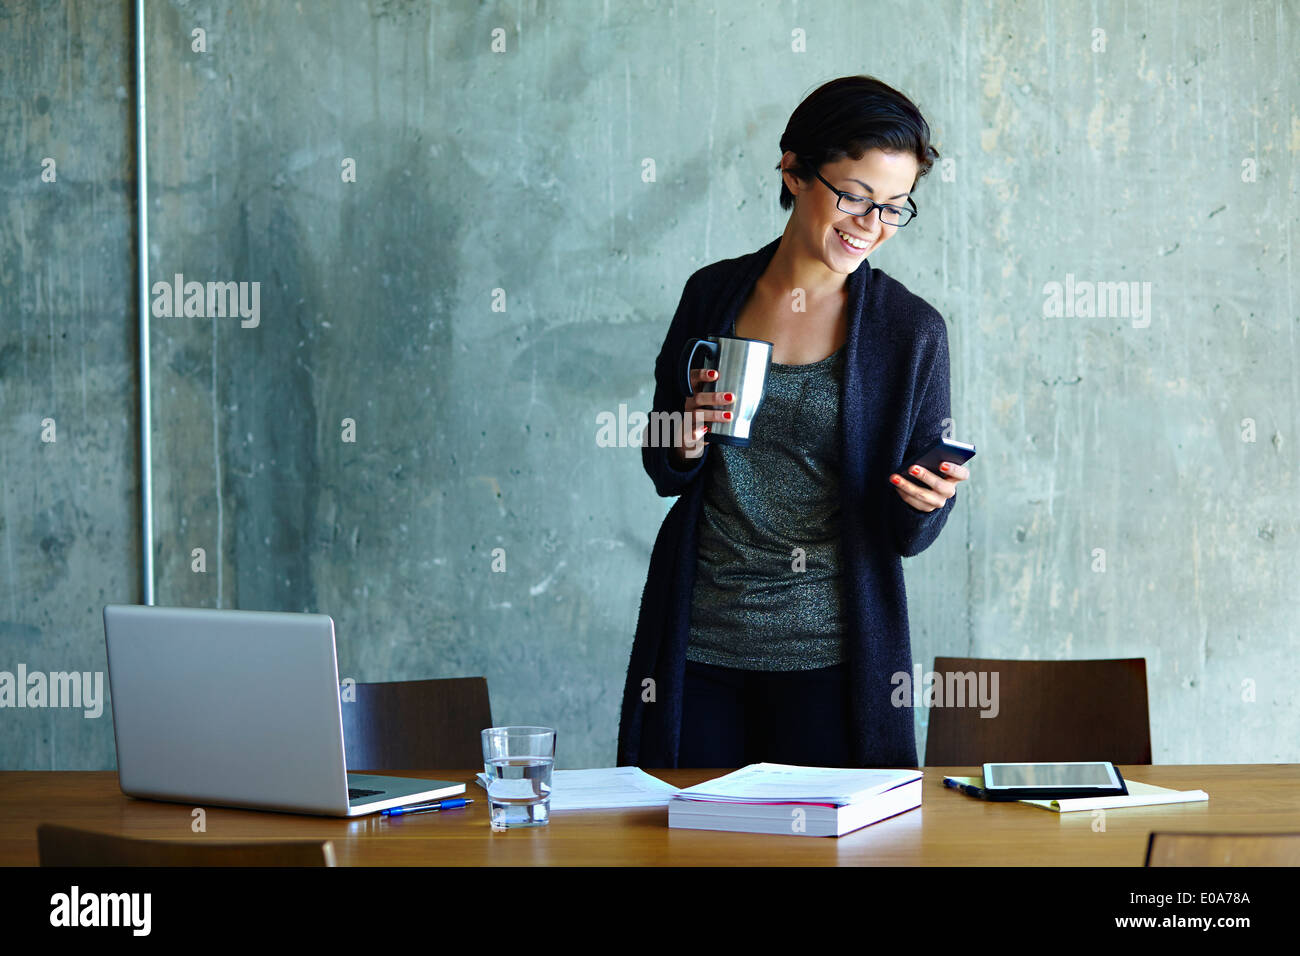 Young businesswoman looking at smartphone in office Photo Stock